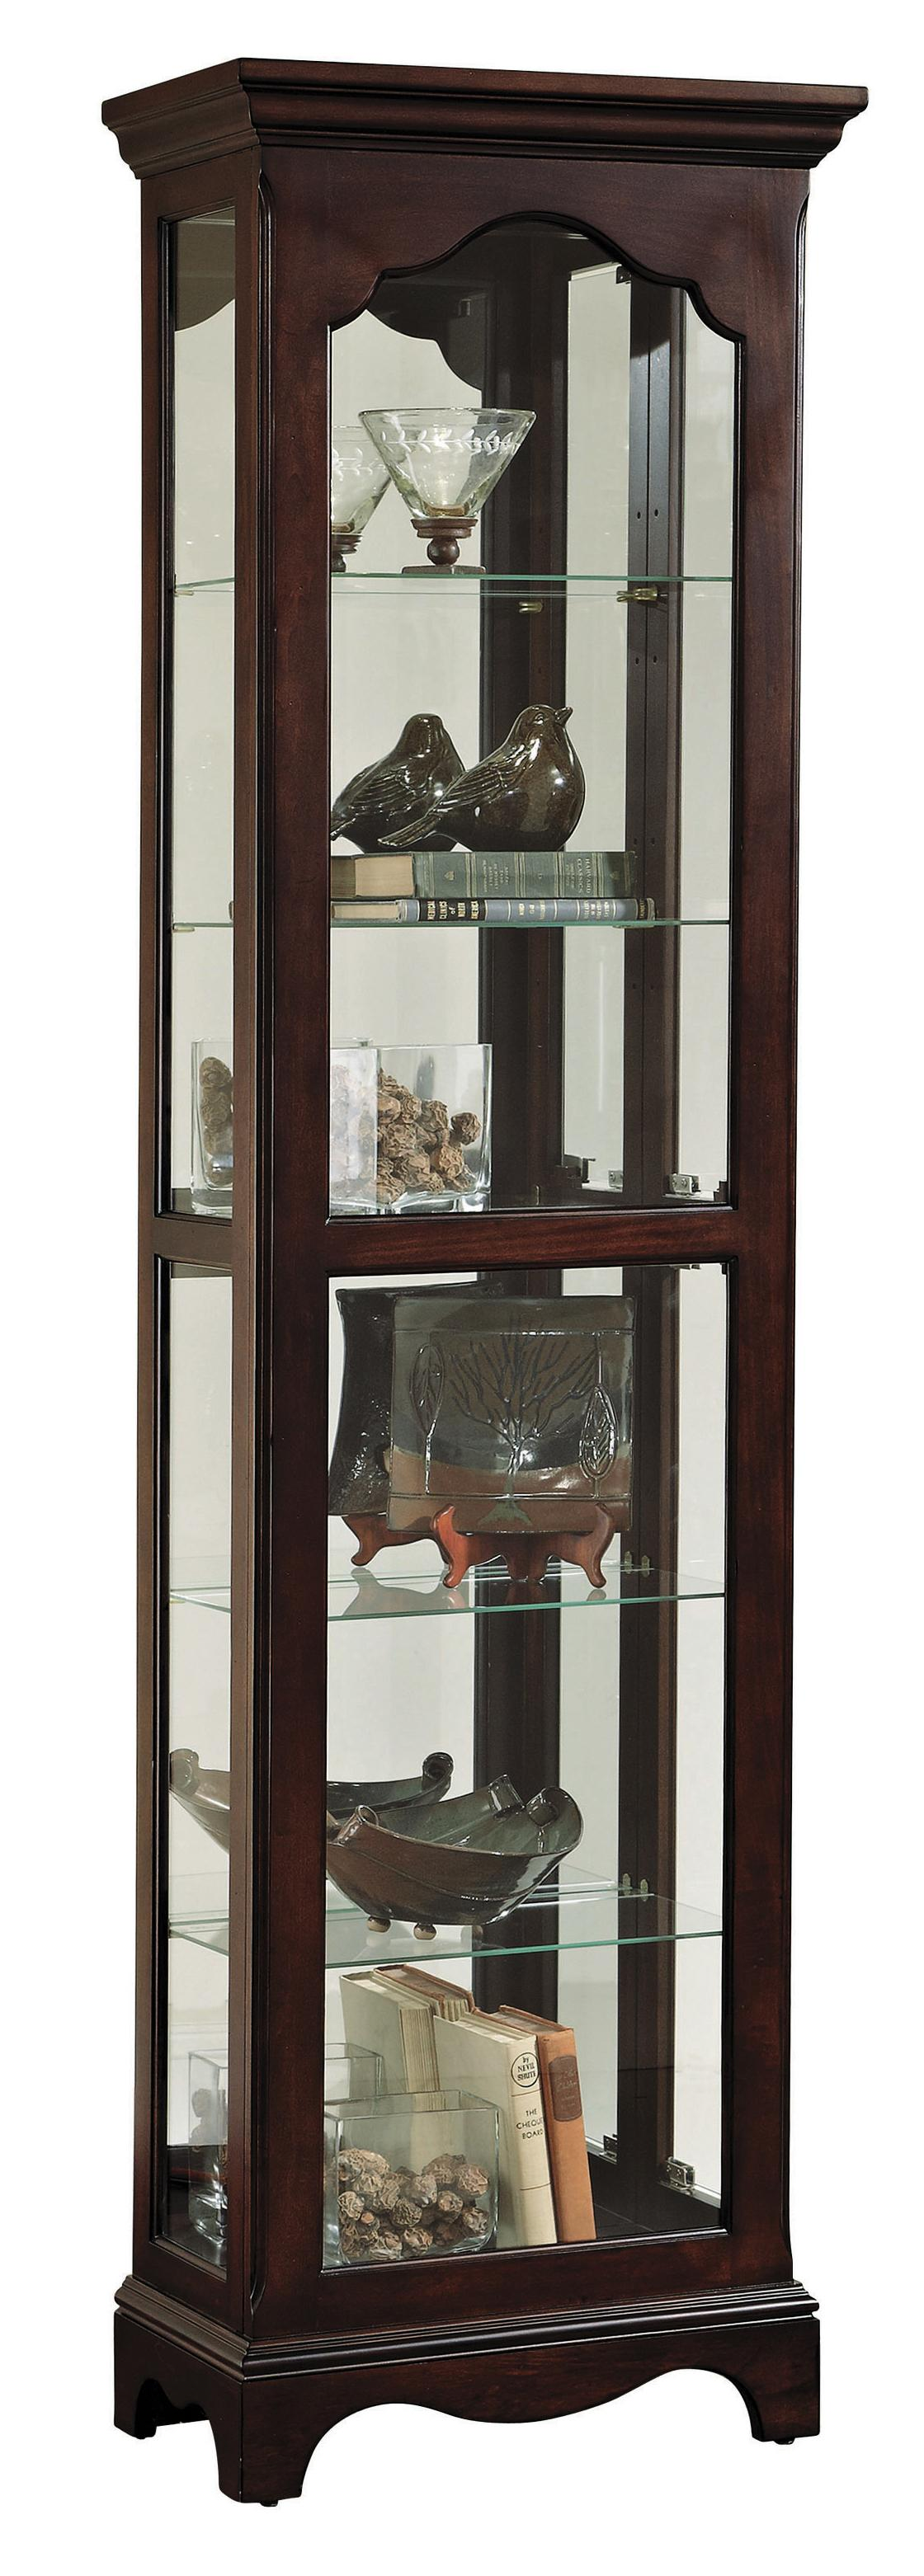 Pulaski Furniture Curios Curio Cabinet - Item Number: 21484